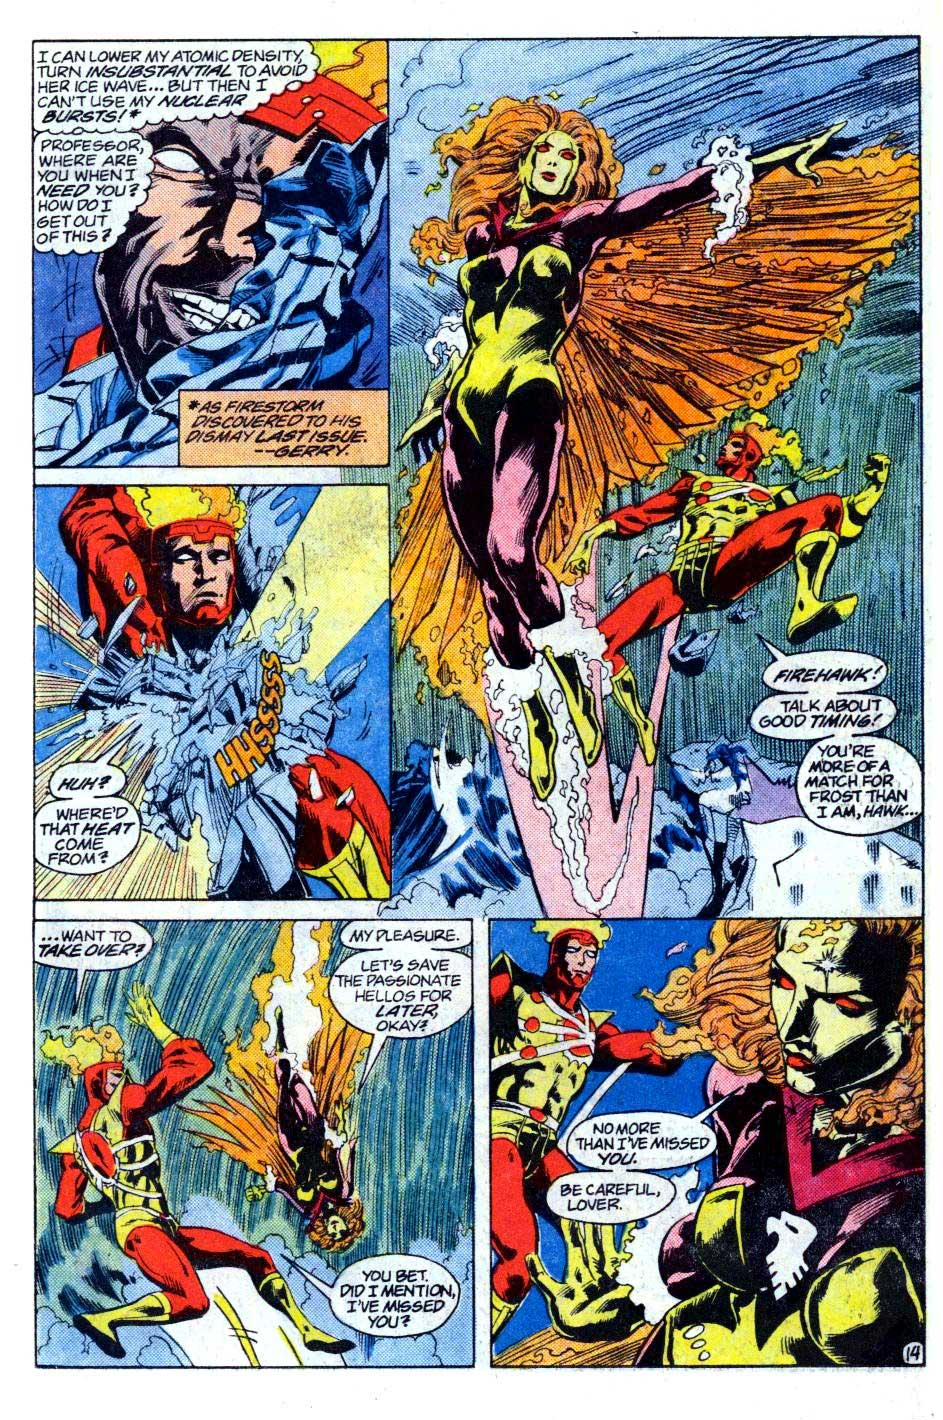 Fury of Firestorm #36 by Gerry Conway, Rafael Kayanan, and Alan Kupperberg